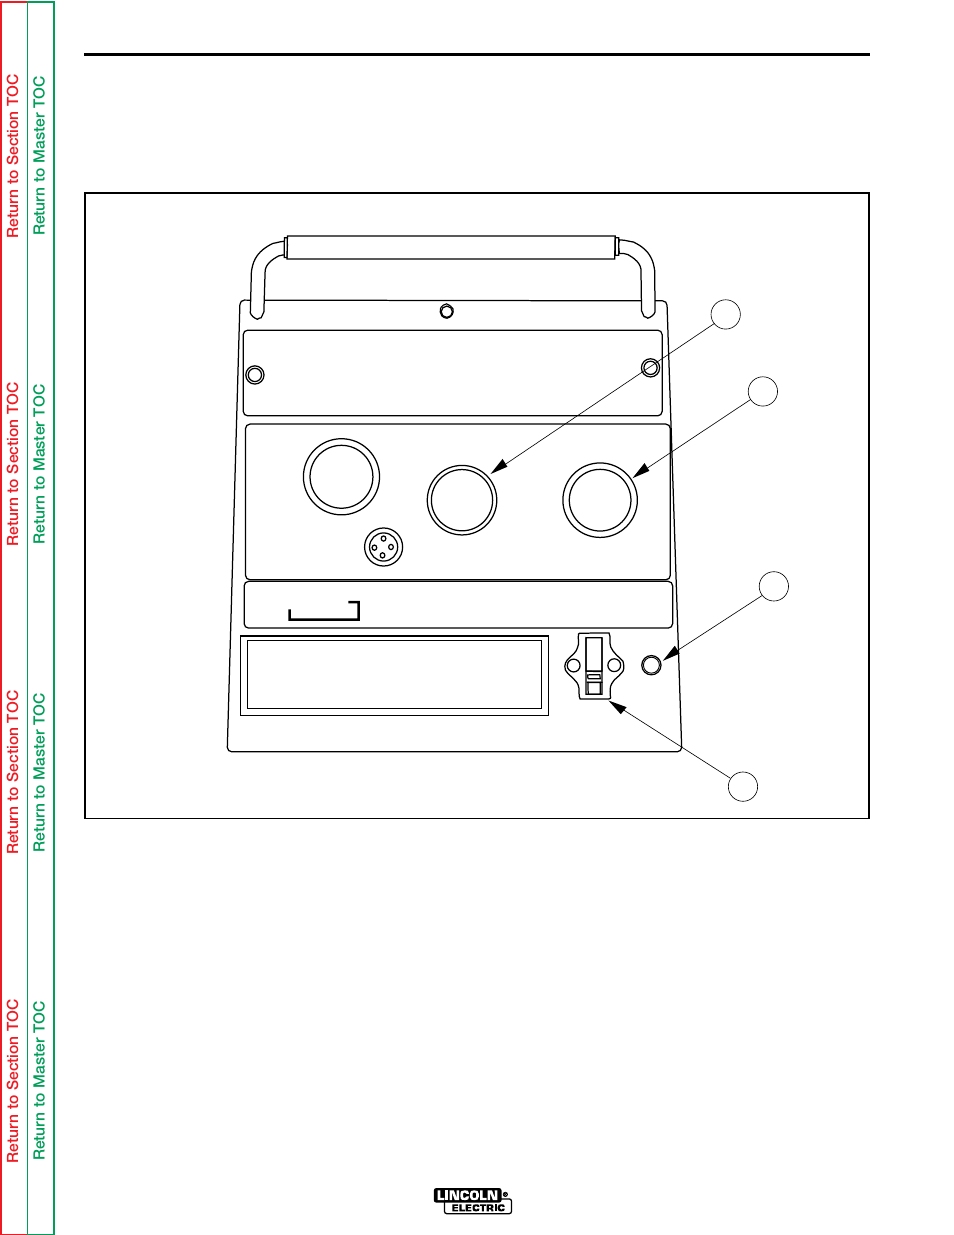 hight resolution of operation wire matic 255 controls and settings lincoln electric wire matic 255 svm 119 a manuel d utilisation page 23 98